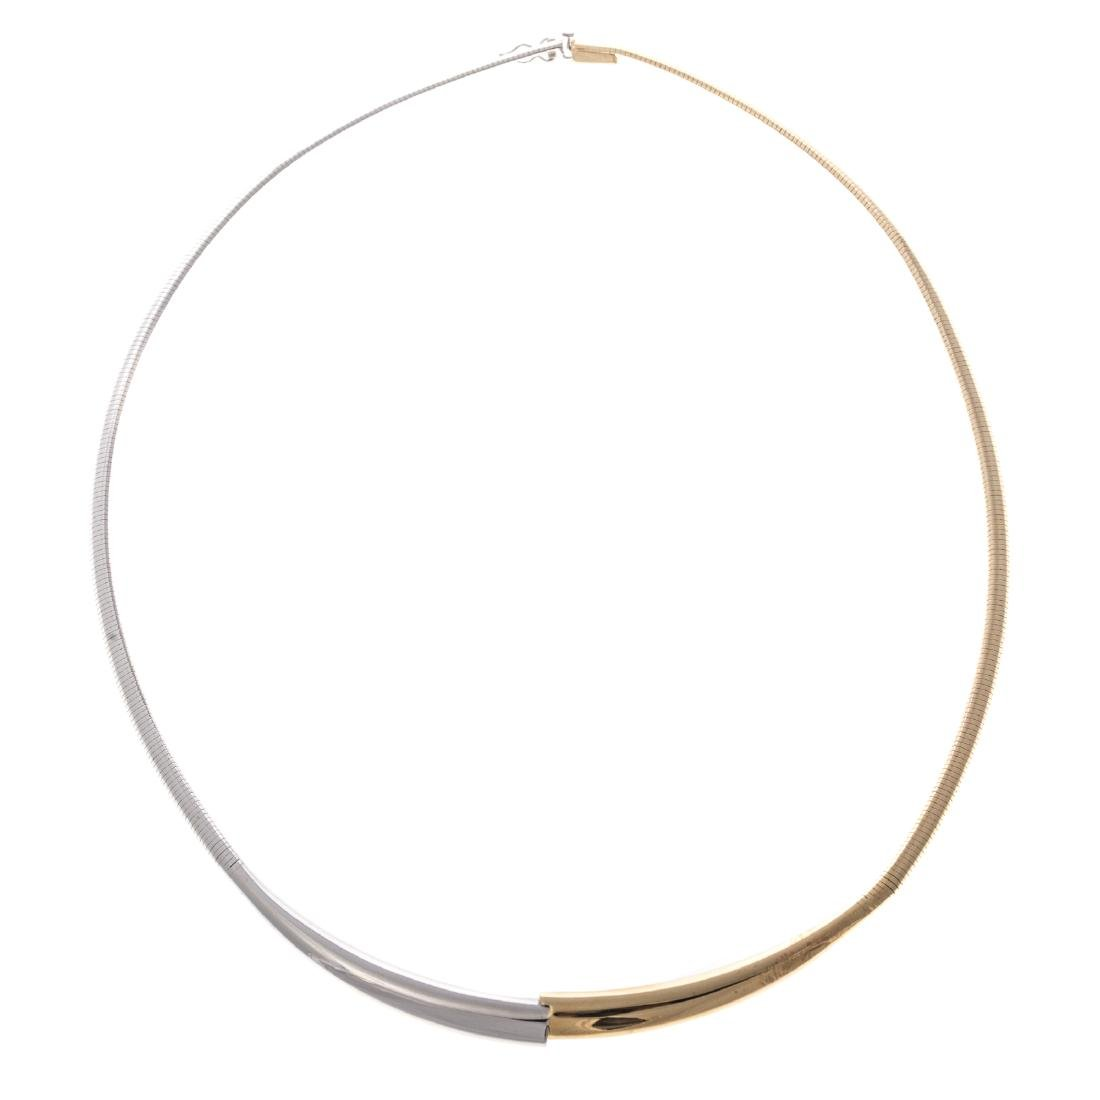 A Lady's Two Toned Omega Necklace